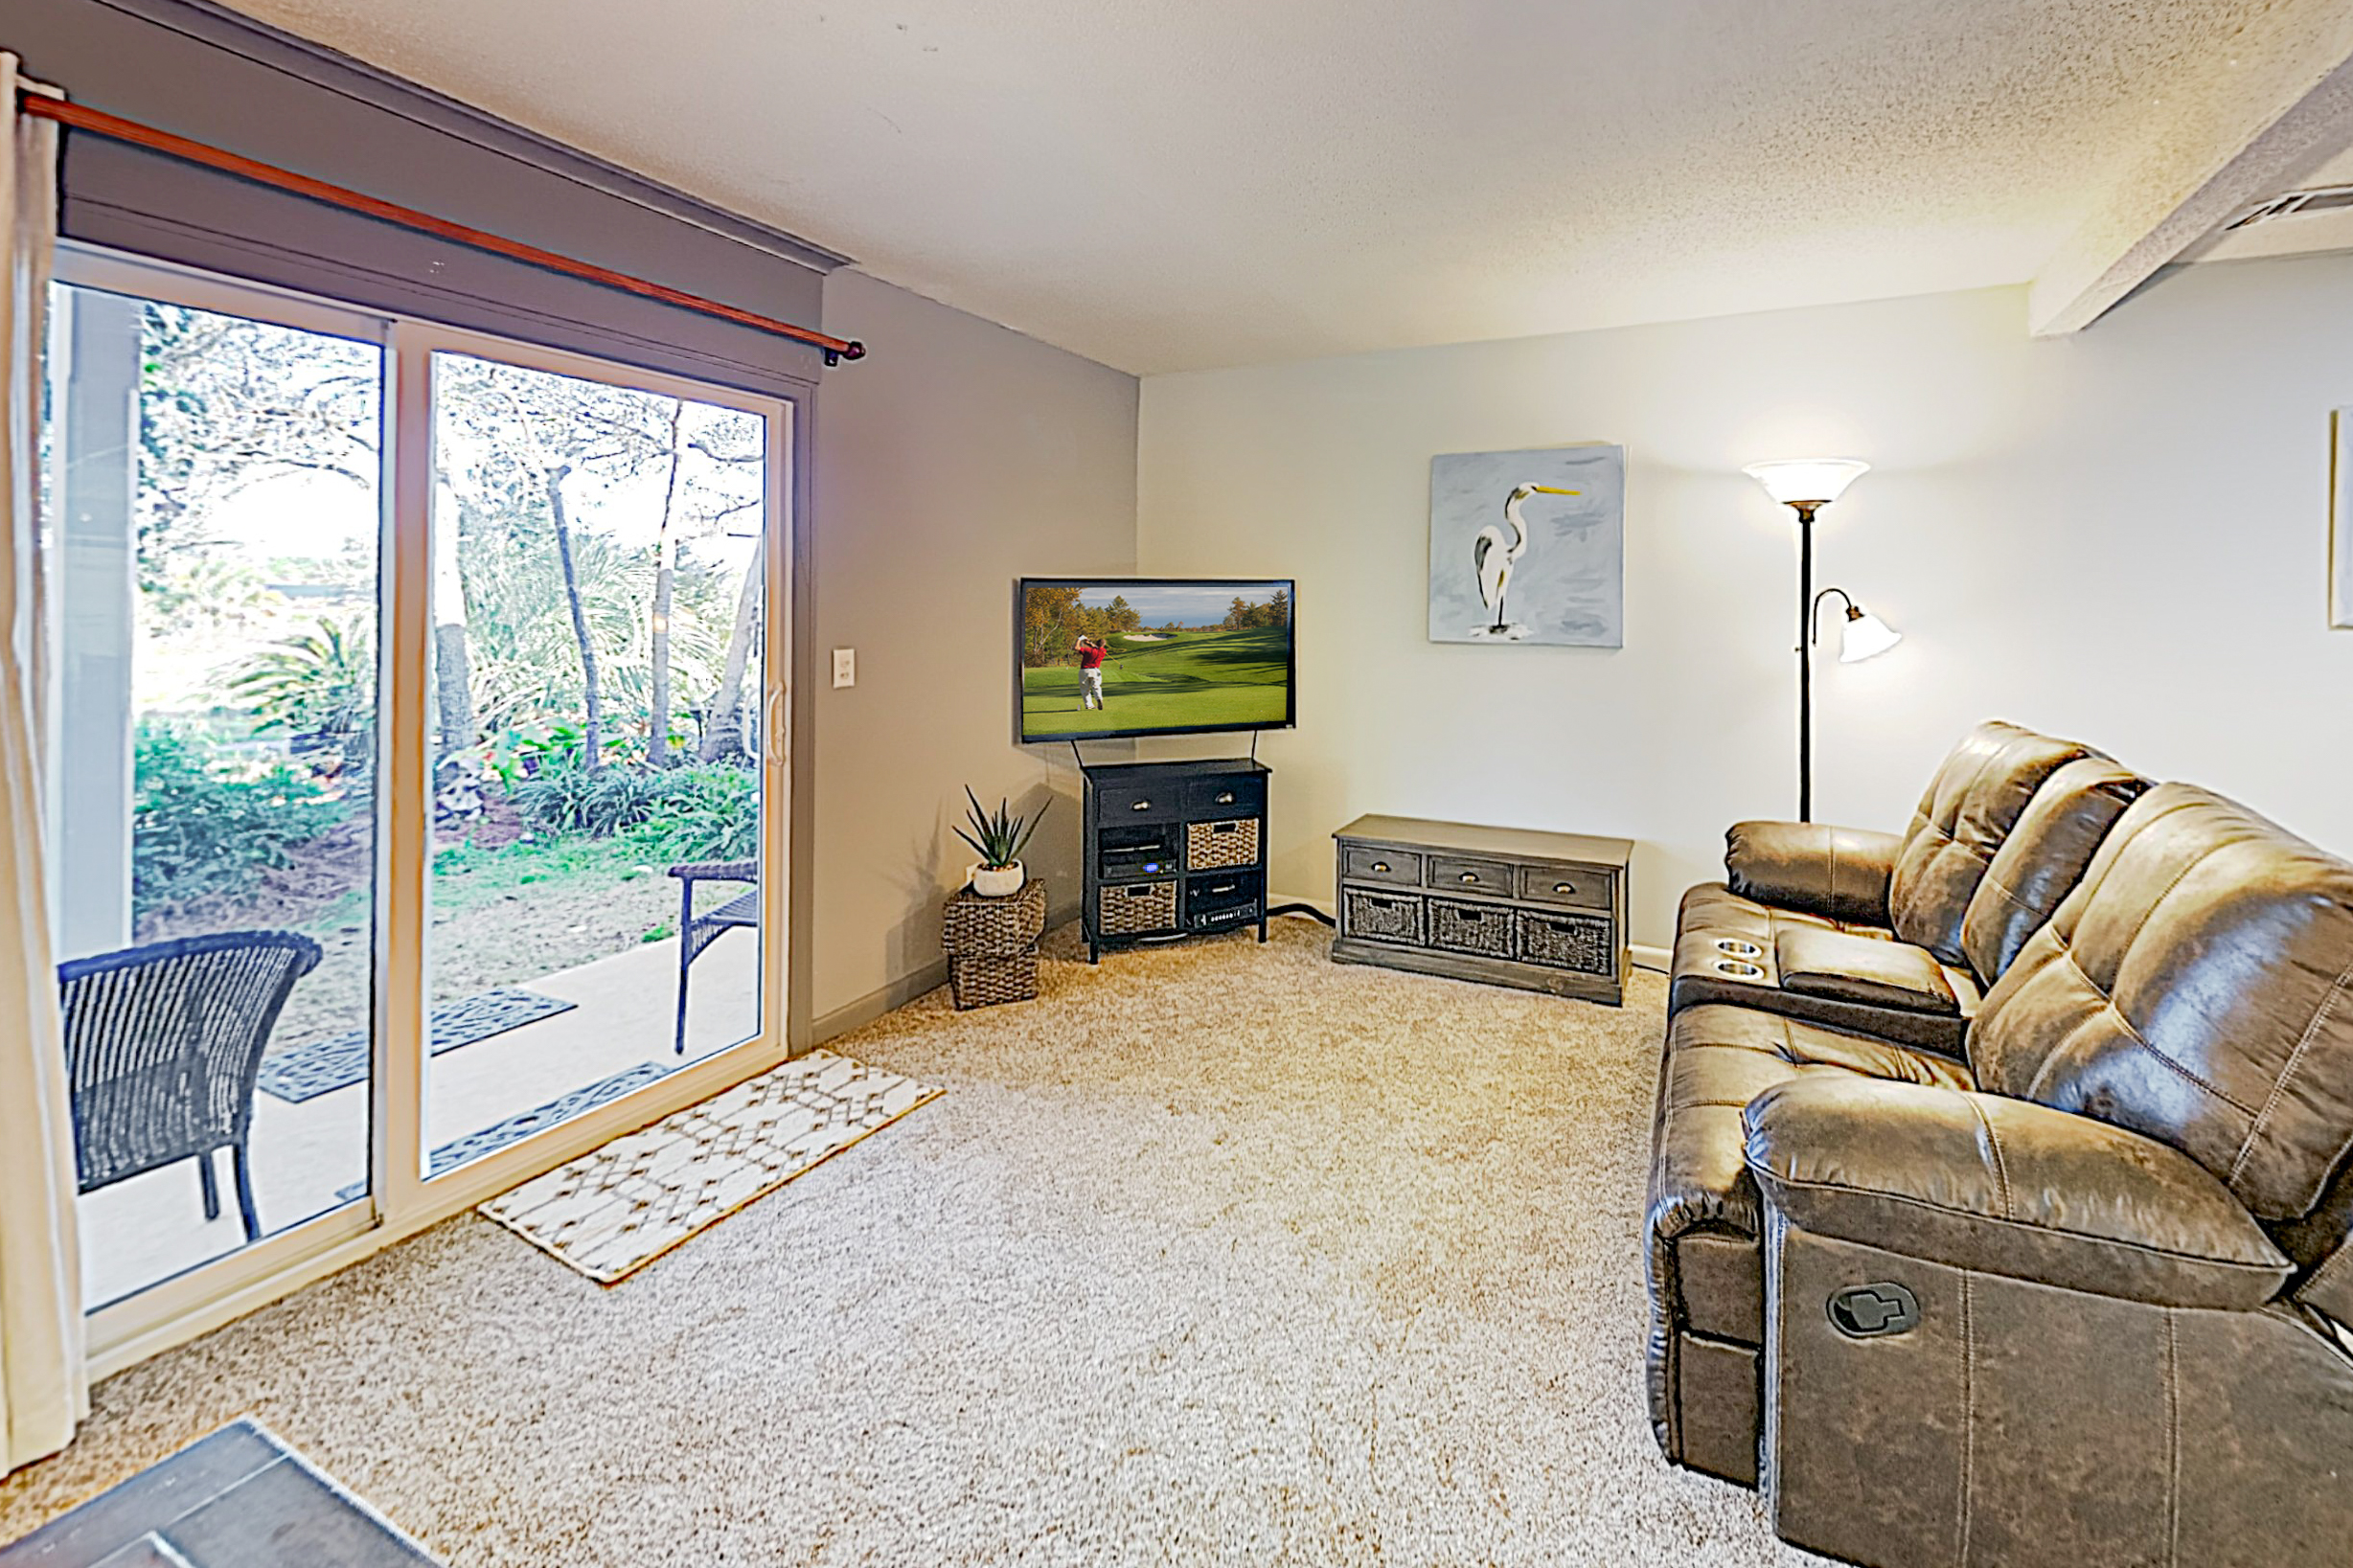 Miramar Beach FL Vacation Rental Welcome to the